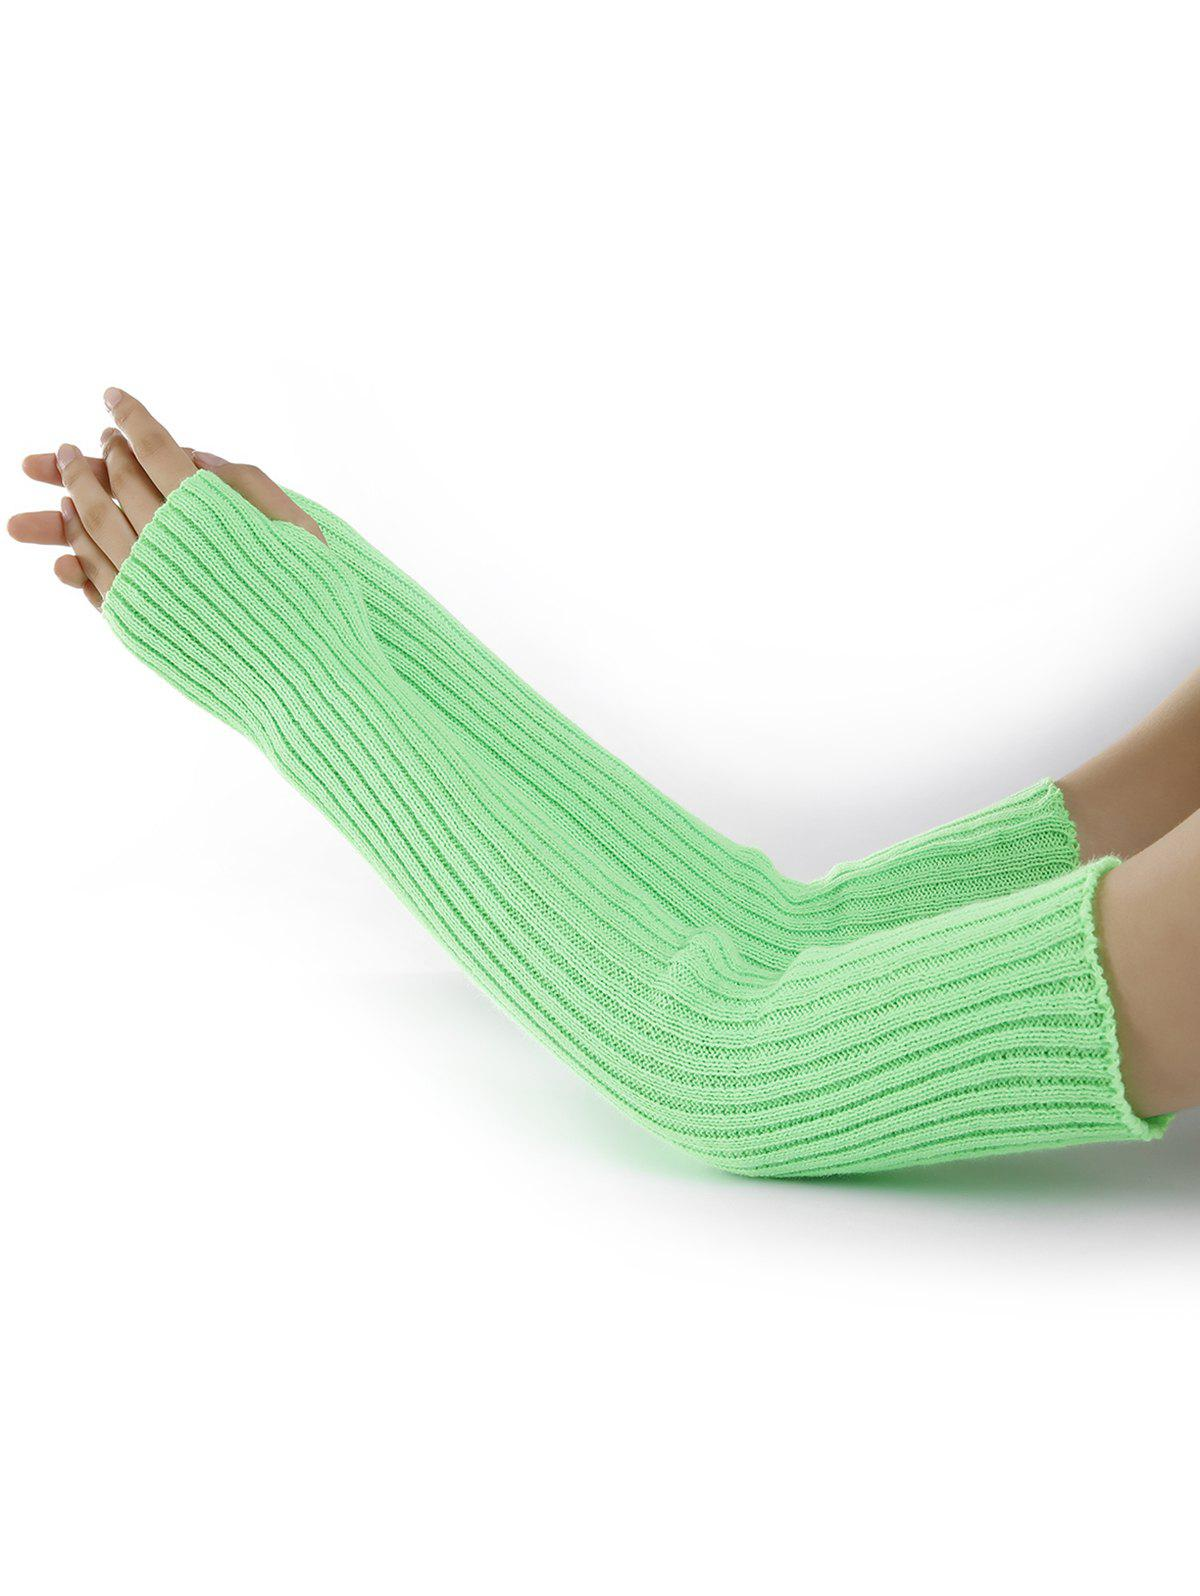 Soft Vertical Striped Pattern Crochet Knitted Arm Warmers - GREEN